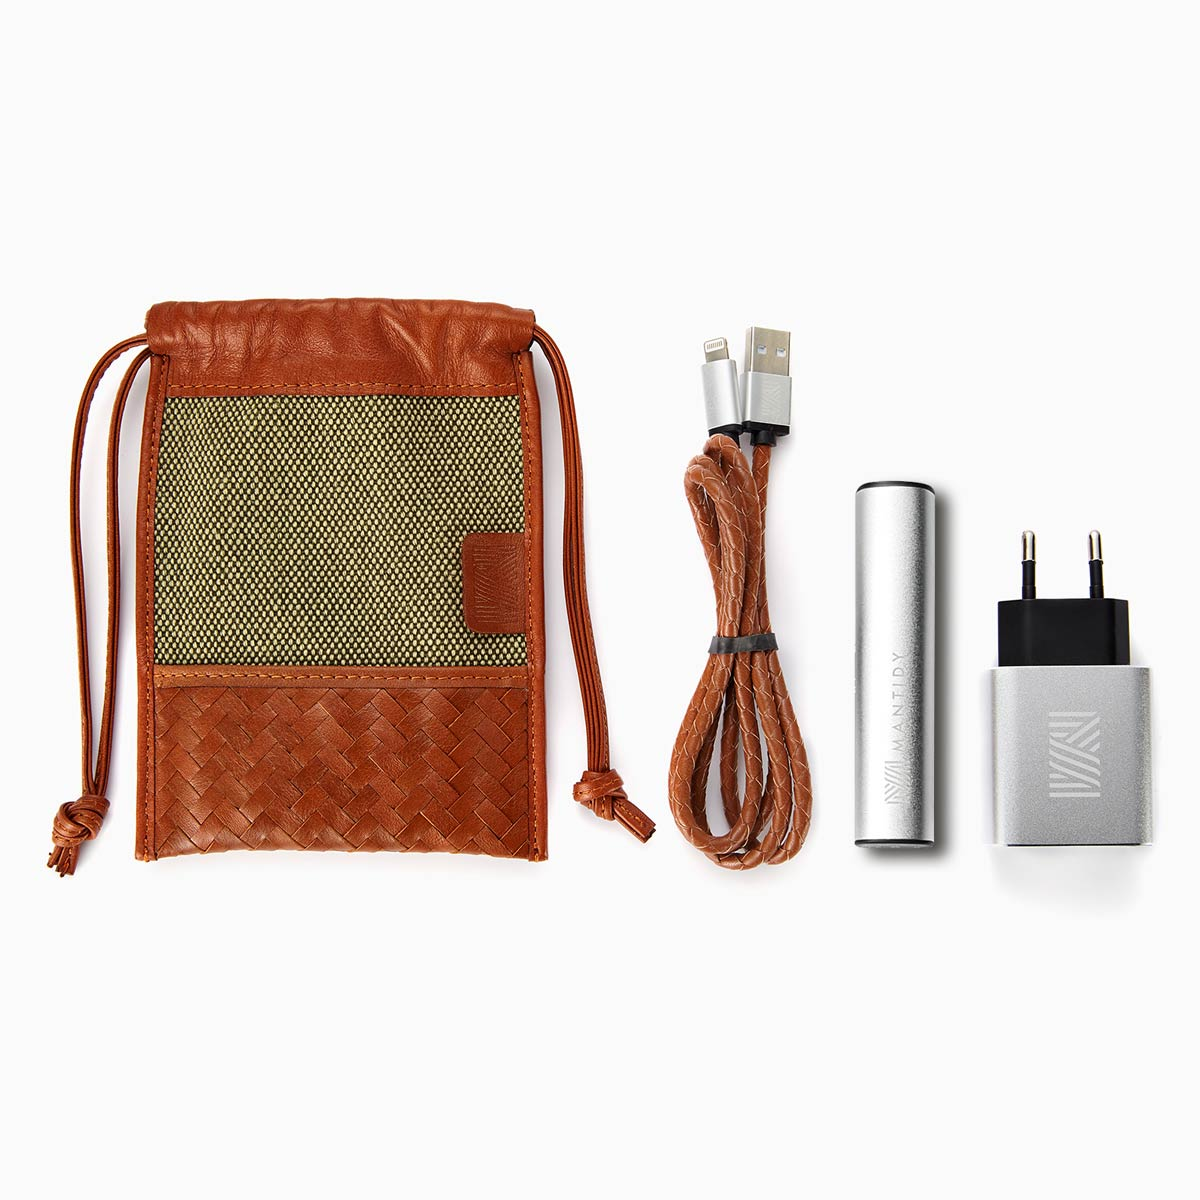 Herringbone TechPACK, Tan: Phone Accessories Kit w Power Bank